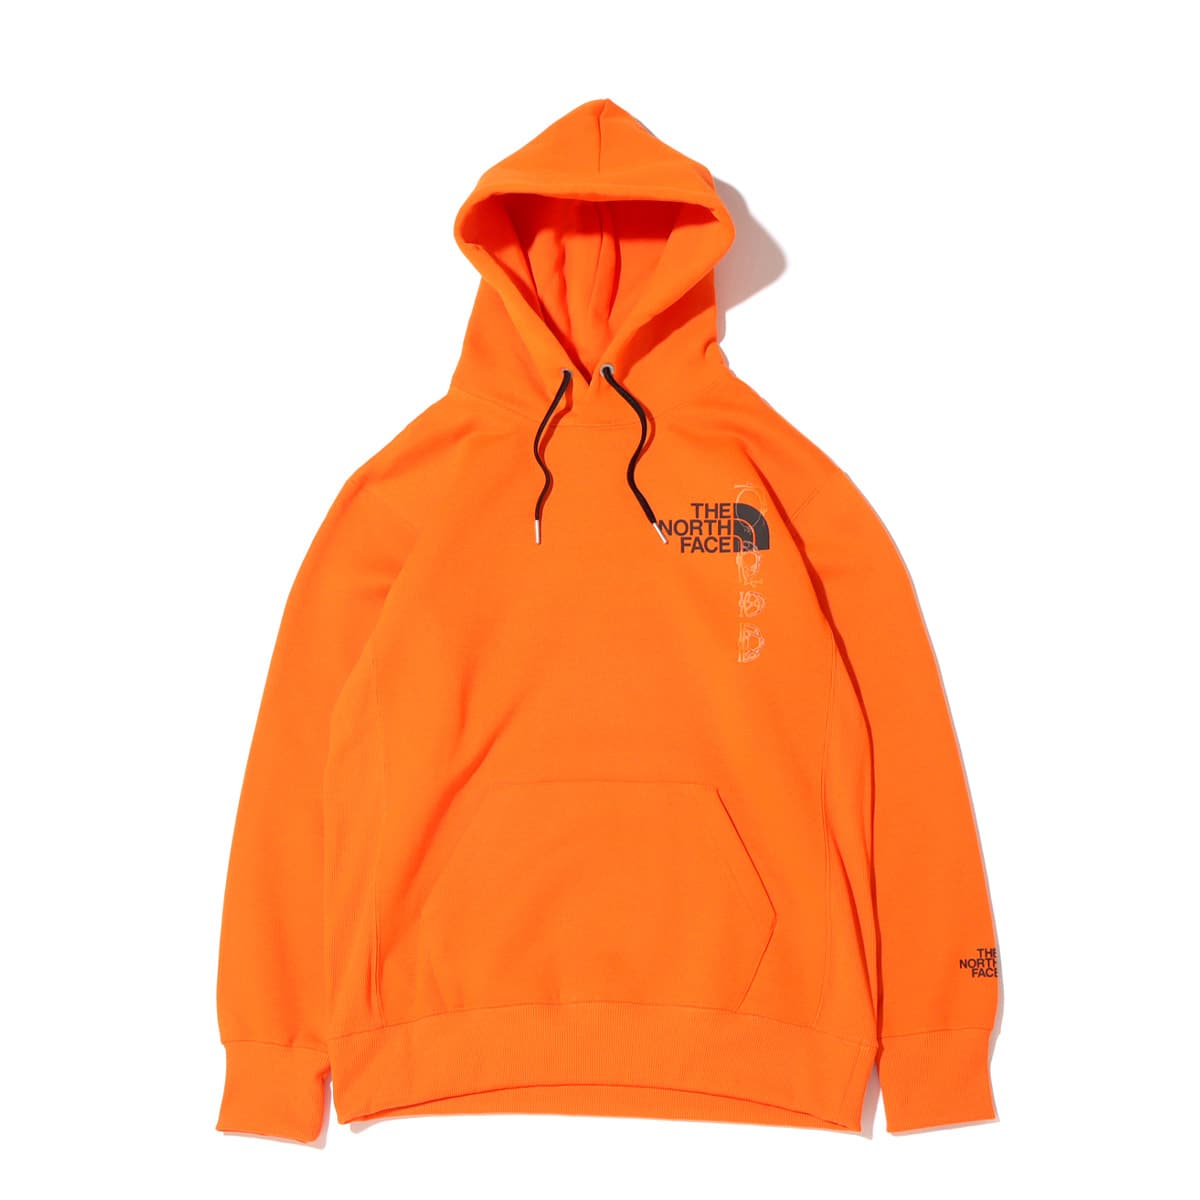 THE NORTH FACE BACK HALF DOME HOODIE レッドオレンジ 21FW-I_photo_large